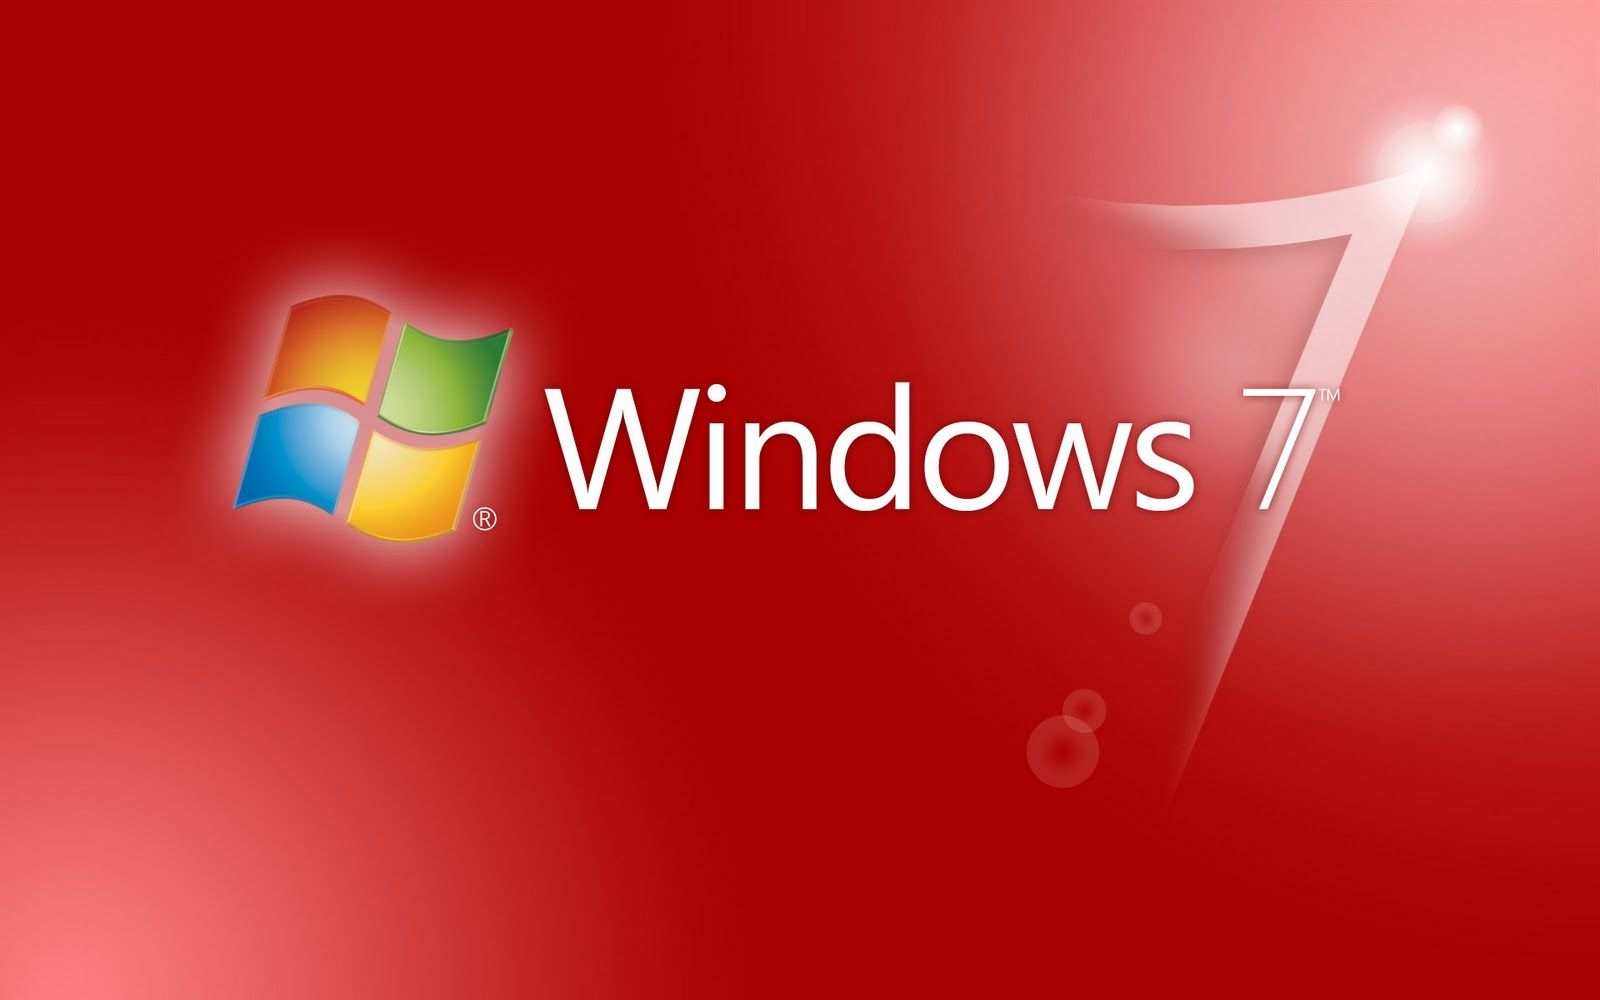 Windows 7 Themes Unlock Hidden Windows 7 Themes Nitish Dangerous Windows Themes Desktop Themes New Wallpaper Hd